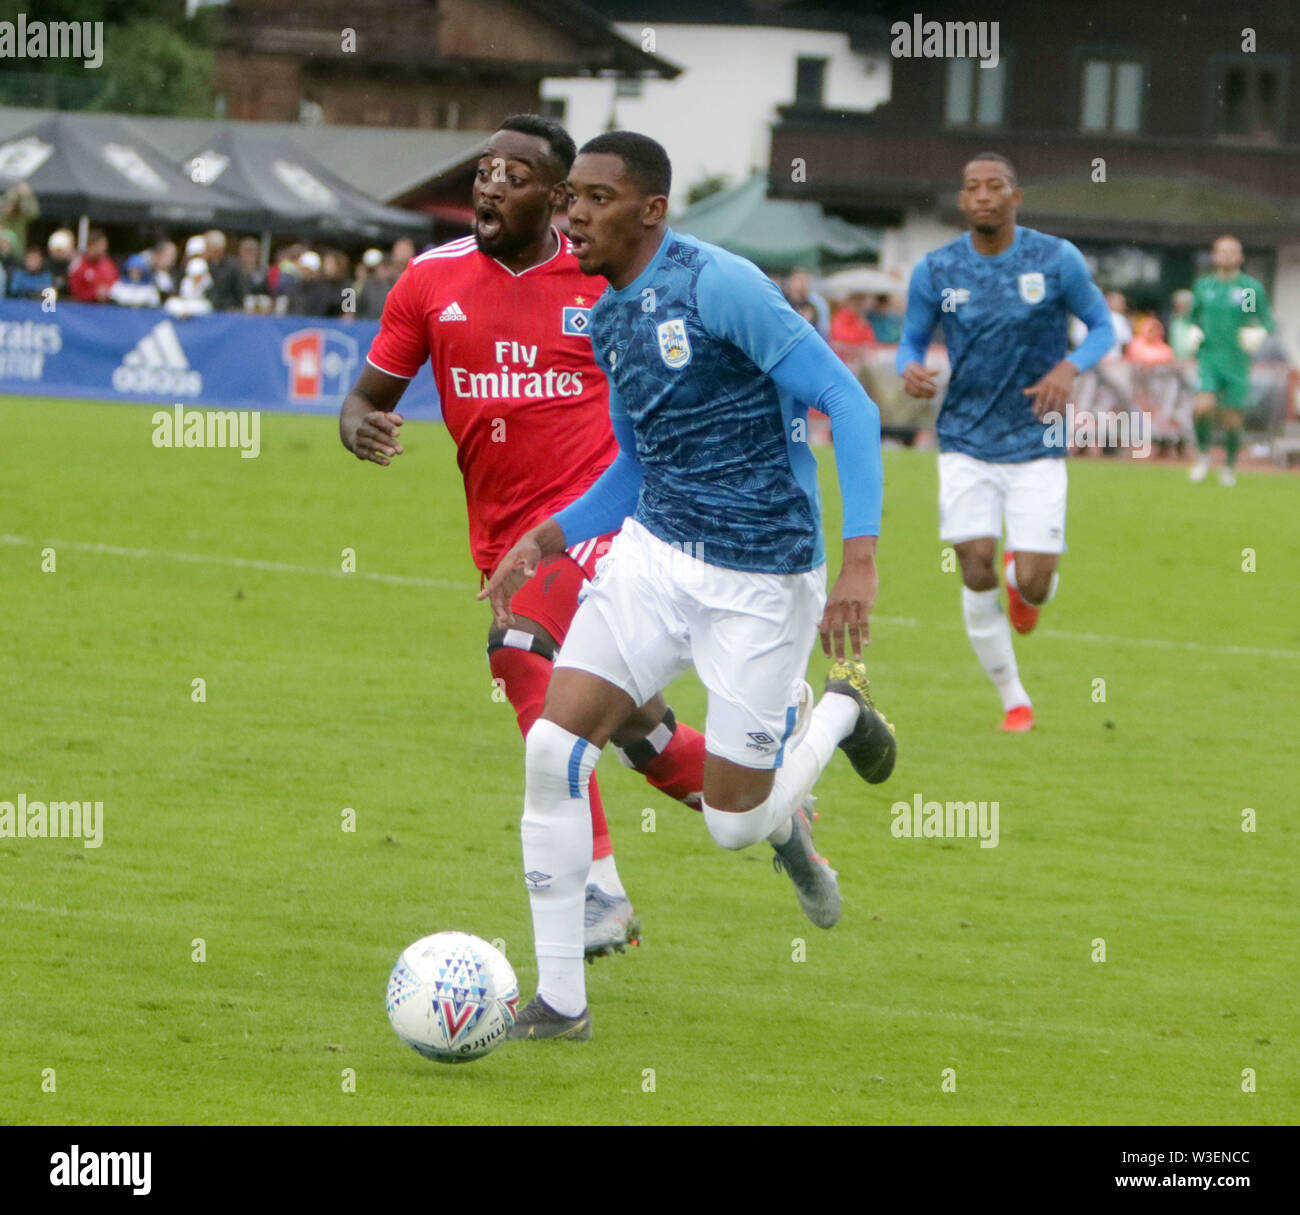 July 13, 2019 - Kitzbuehel, Austria - from left  Khaled NAREY (Hamburg), Jaden BROWN Huddersfield).pre season friendly 2019/20, .Huddersfield Town FC vs Hamburger SV,.Stadion Kitzbuehel/Austria, July 13, 2019, .Huddersfield Town, the relegated team of the Premiere League wins in a pre season friendly against the former German champion Hamburger SV. (Credit Image: © Wolfgang Fehrmann/ZUMA Wire) - Stock Image